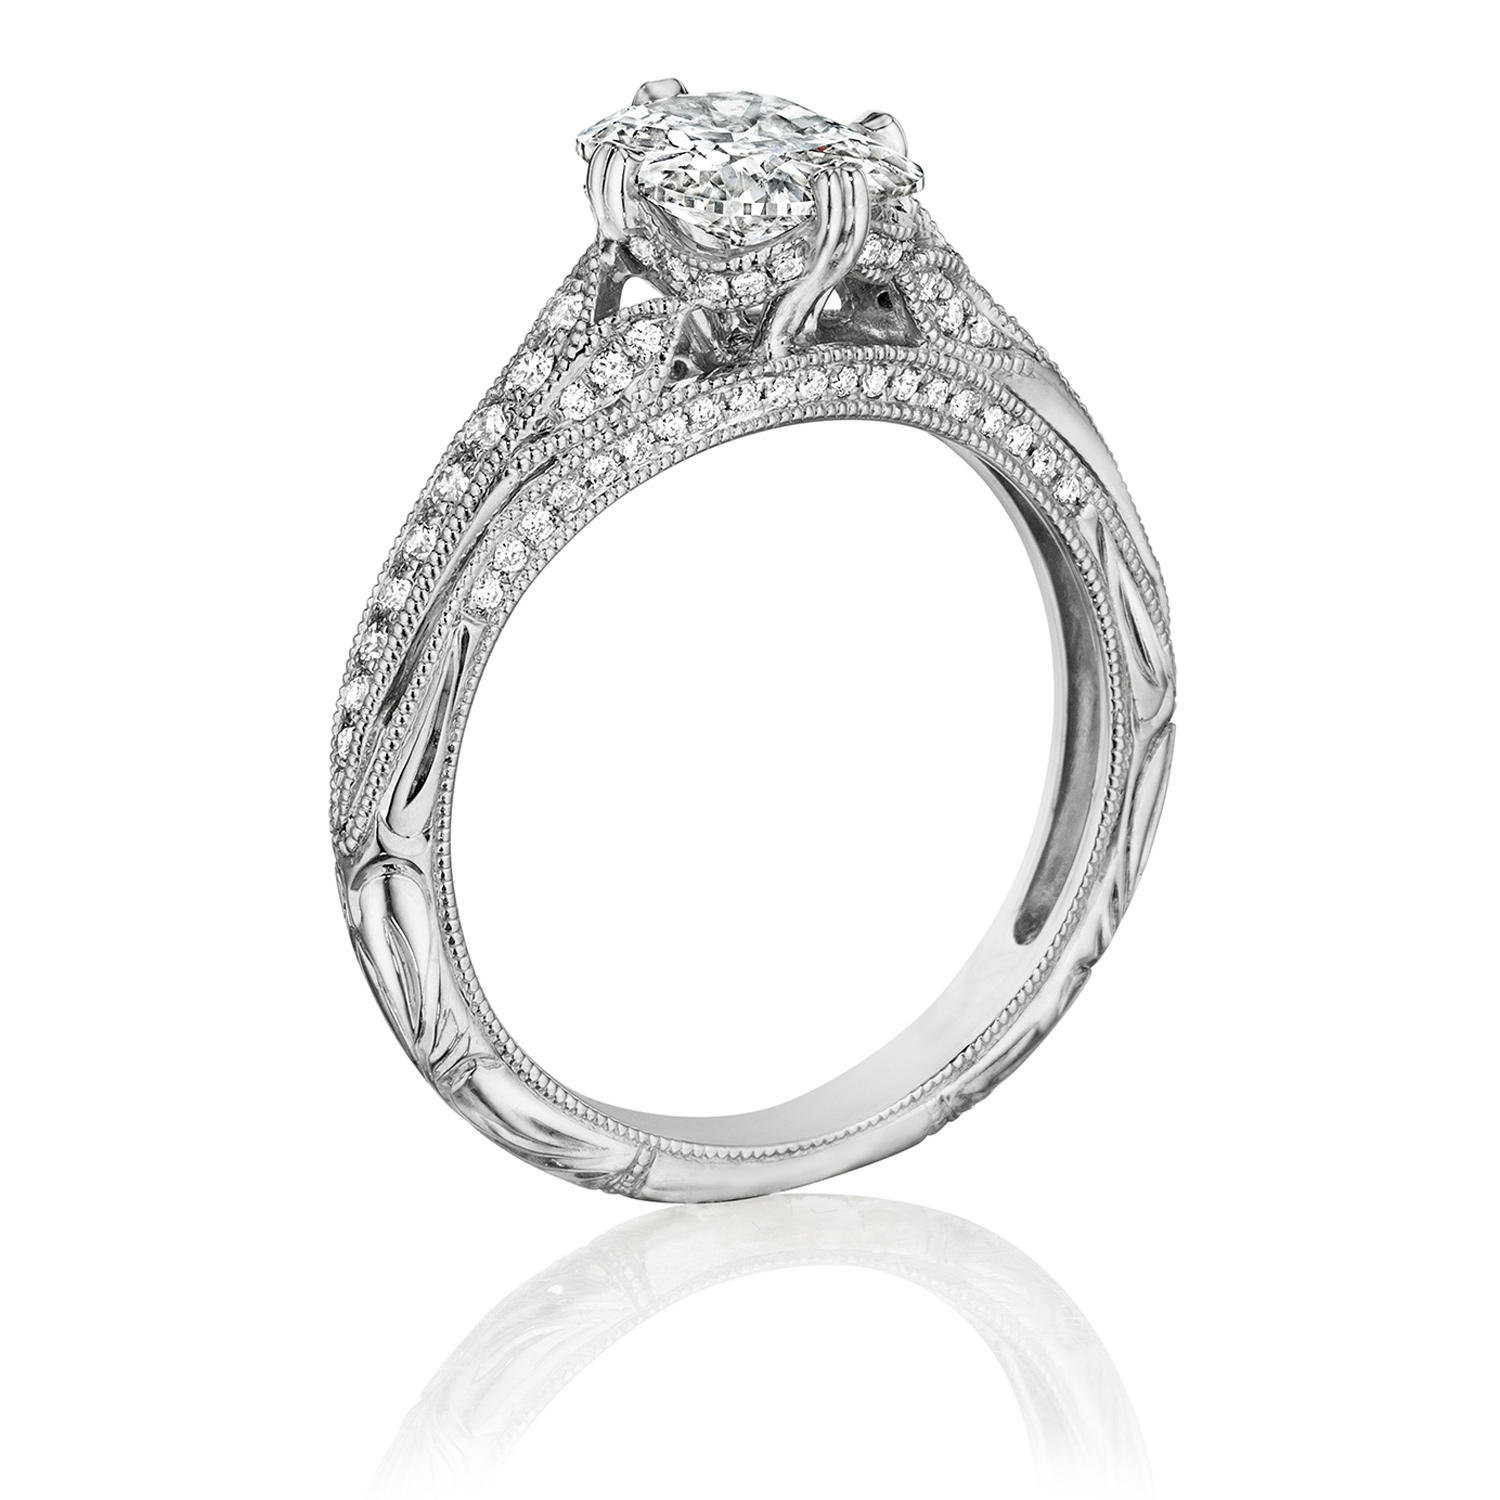 Henri Daussi AN Cushion Antique Solitaire Diamond Engagement Ring Alternative View 1